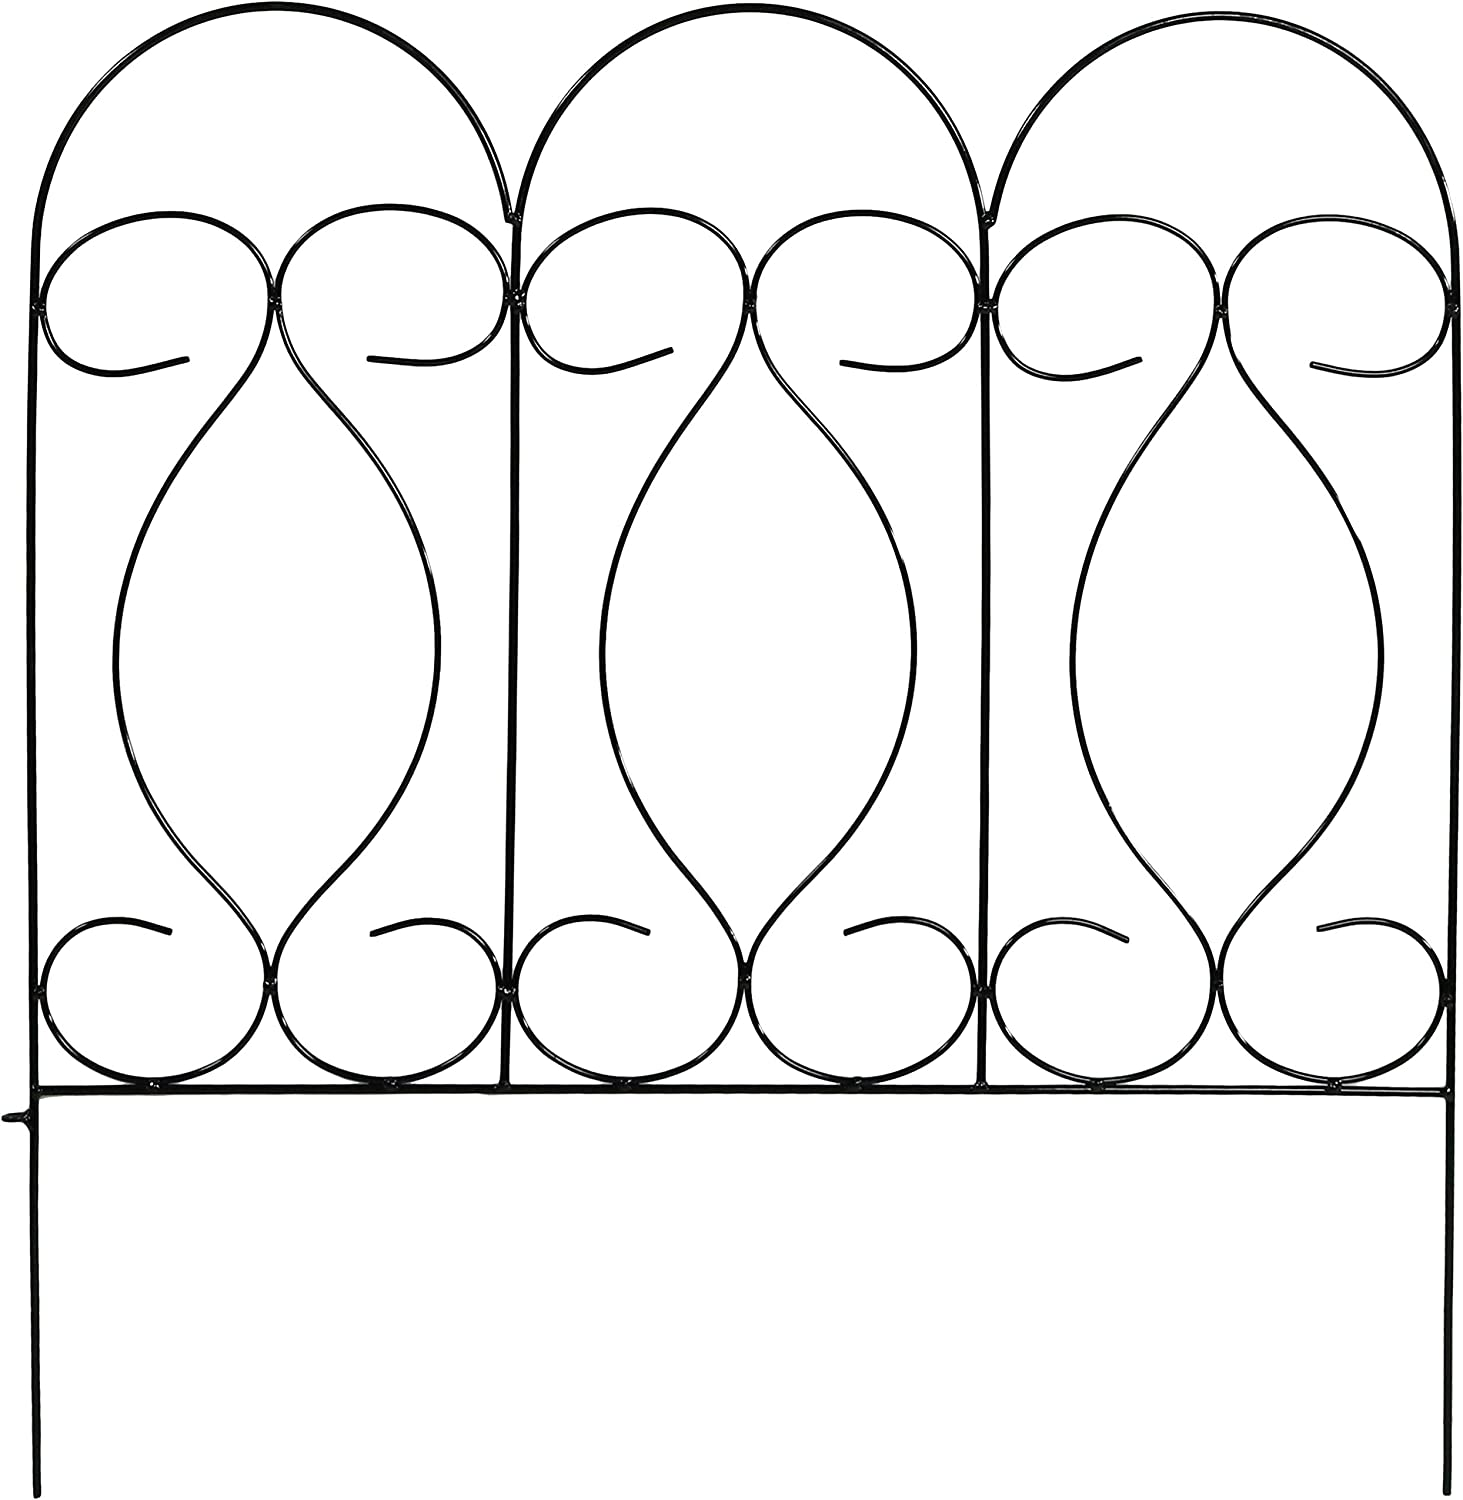 10 Feet Overall 24 Inches x 24 Inches Wide Each Piece Sunnydaze 5 Piece Traditional Border Fence Set Decorative Metal Garden Fencing